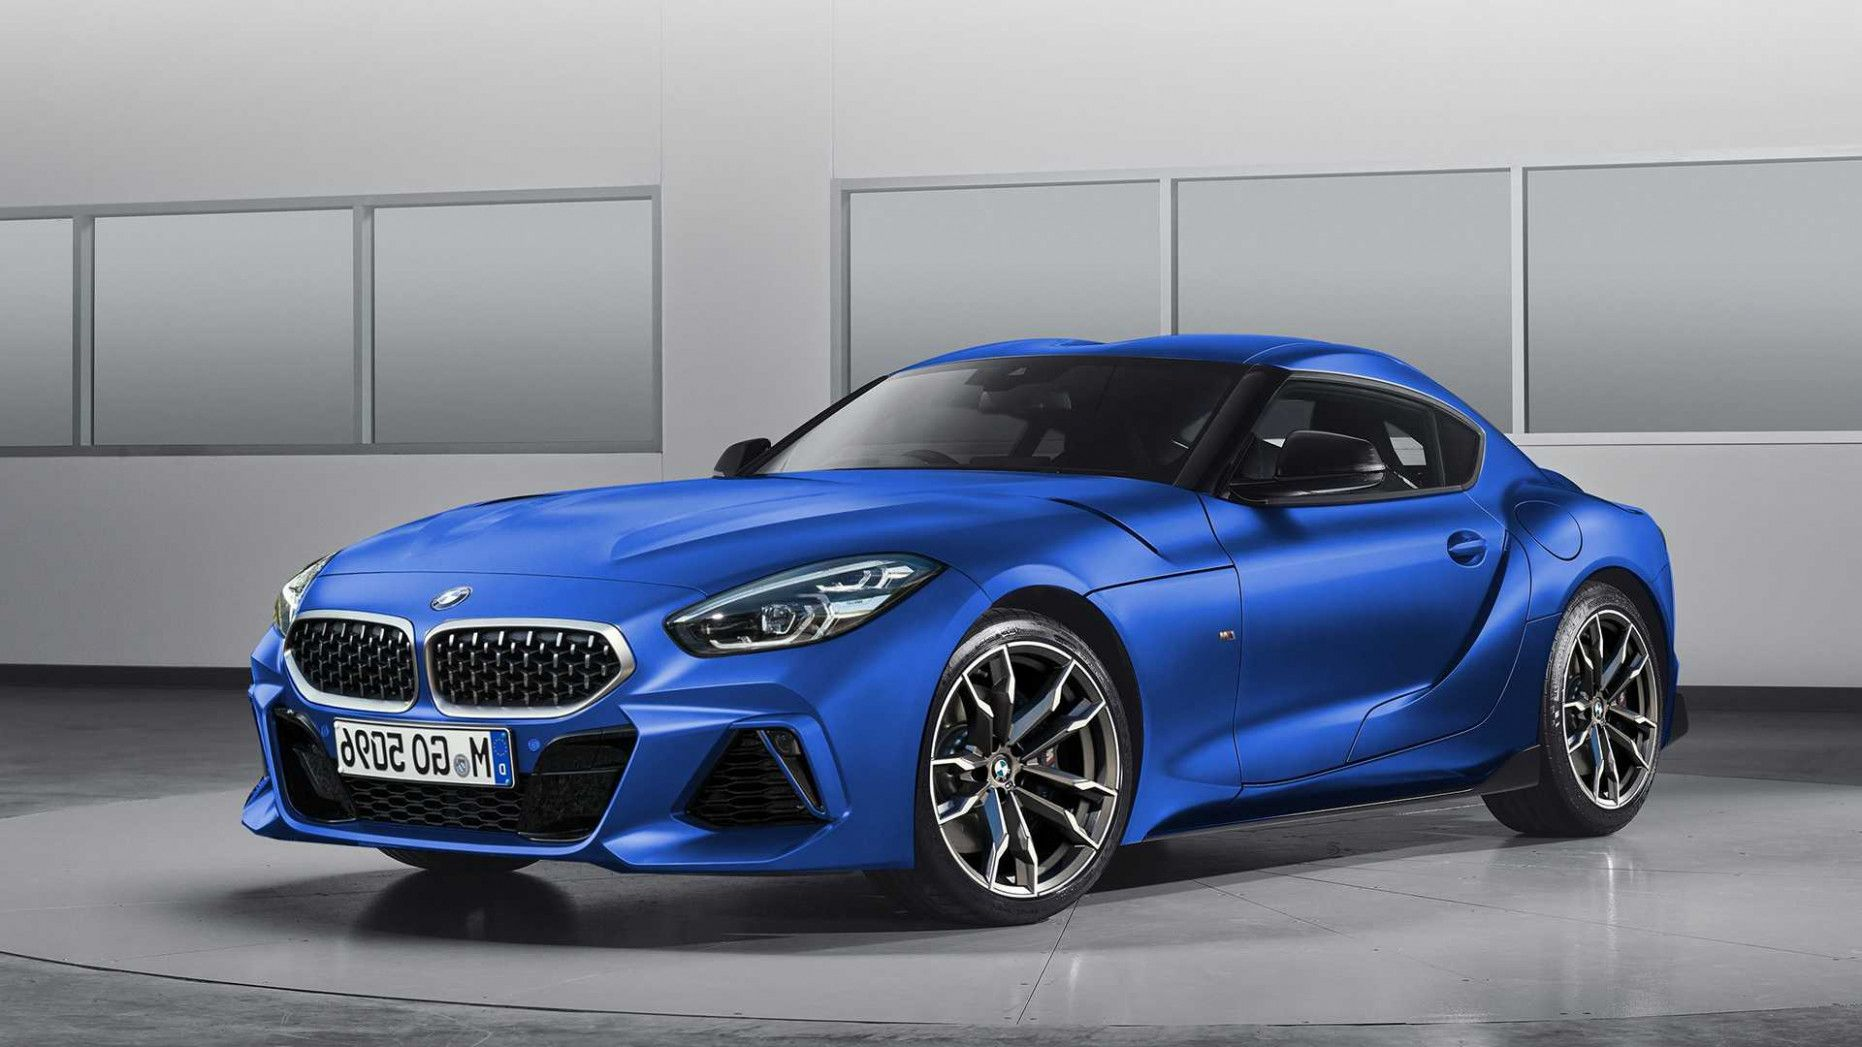 10 Benefits Of Bmw Z4 Coupe 2020 That May Change Your Perspective Bmw Z4 Coupe Bmw Z4 Bmw